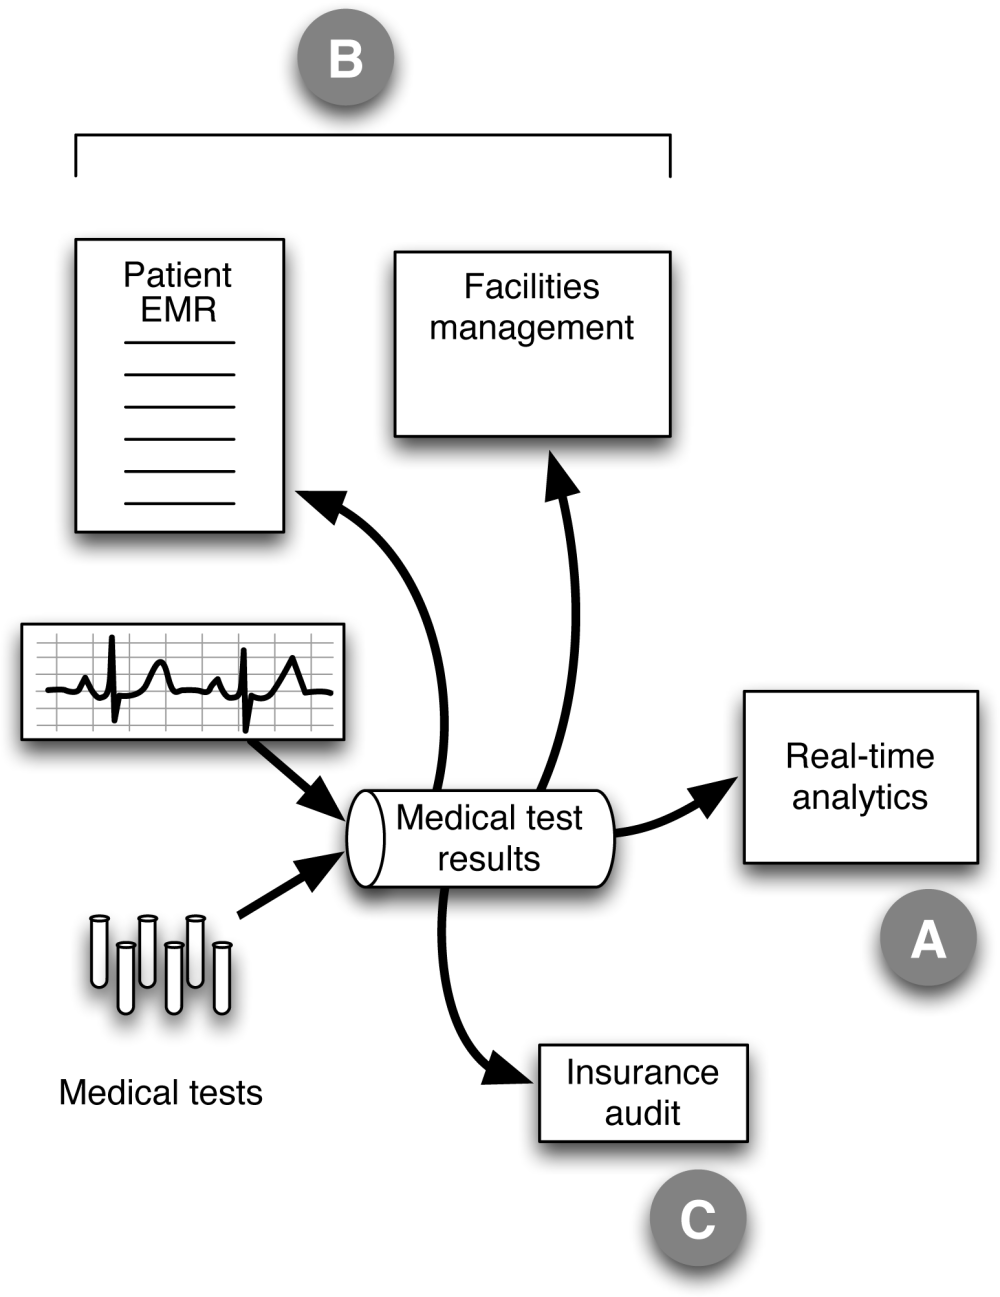 medium resolution of healthcare example with streaming data used for more than just real time analytics the diagram shows a schematic design for a system that handles data from